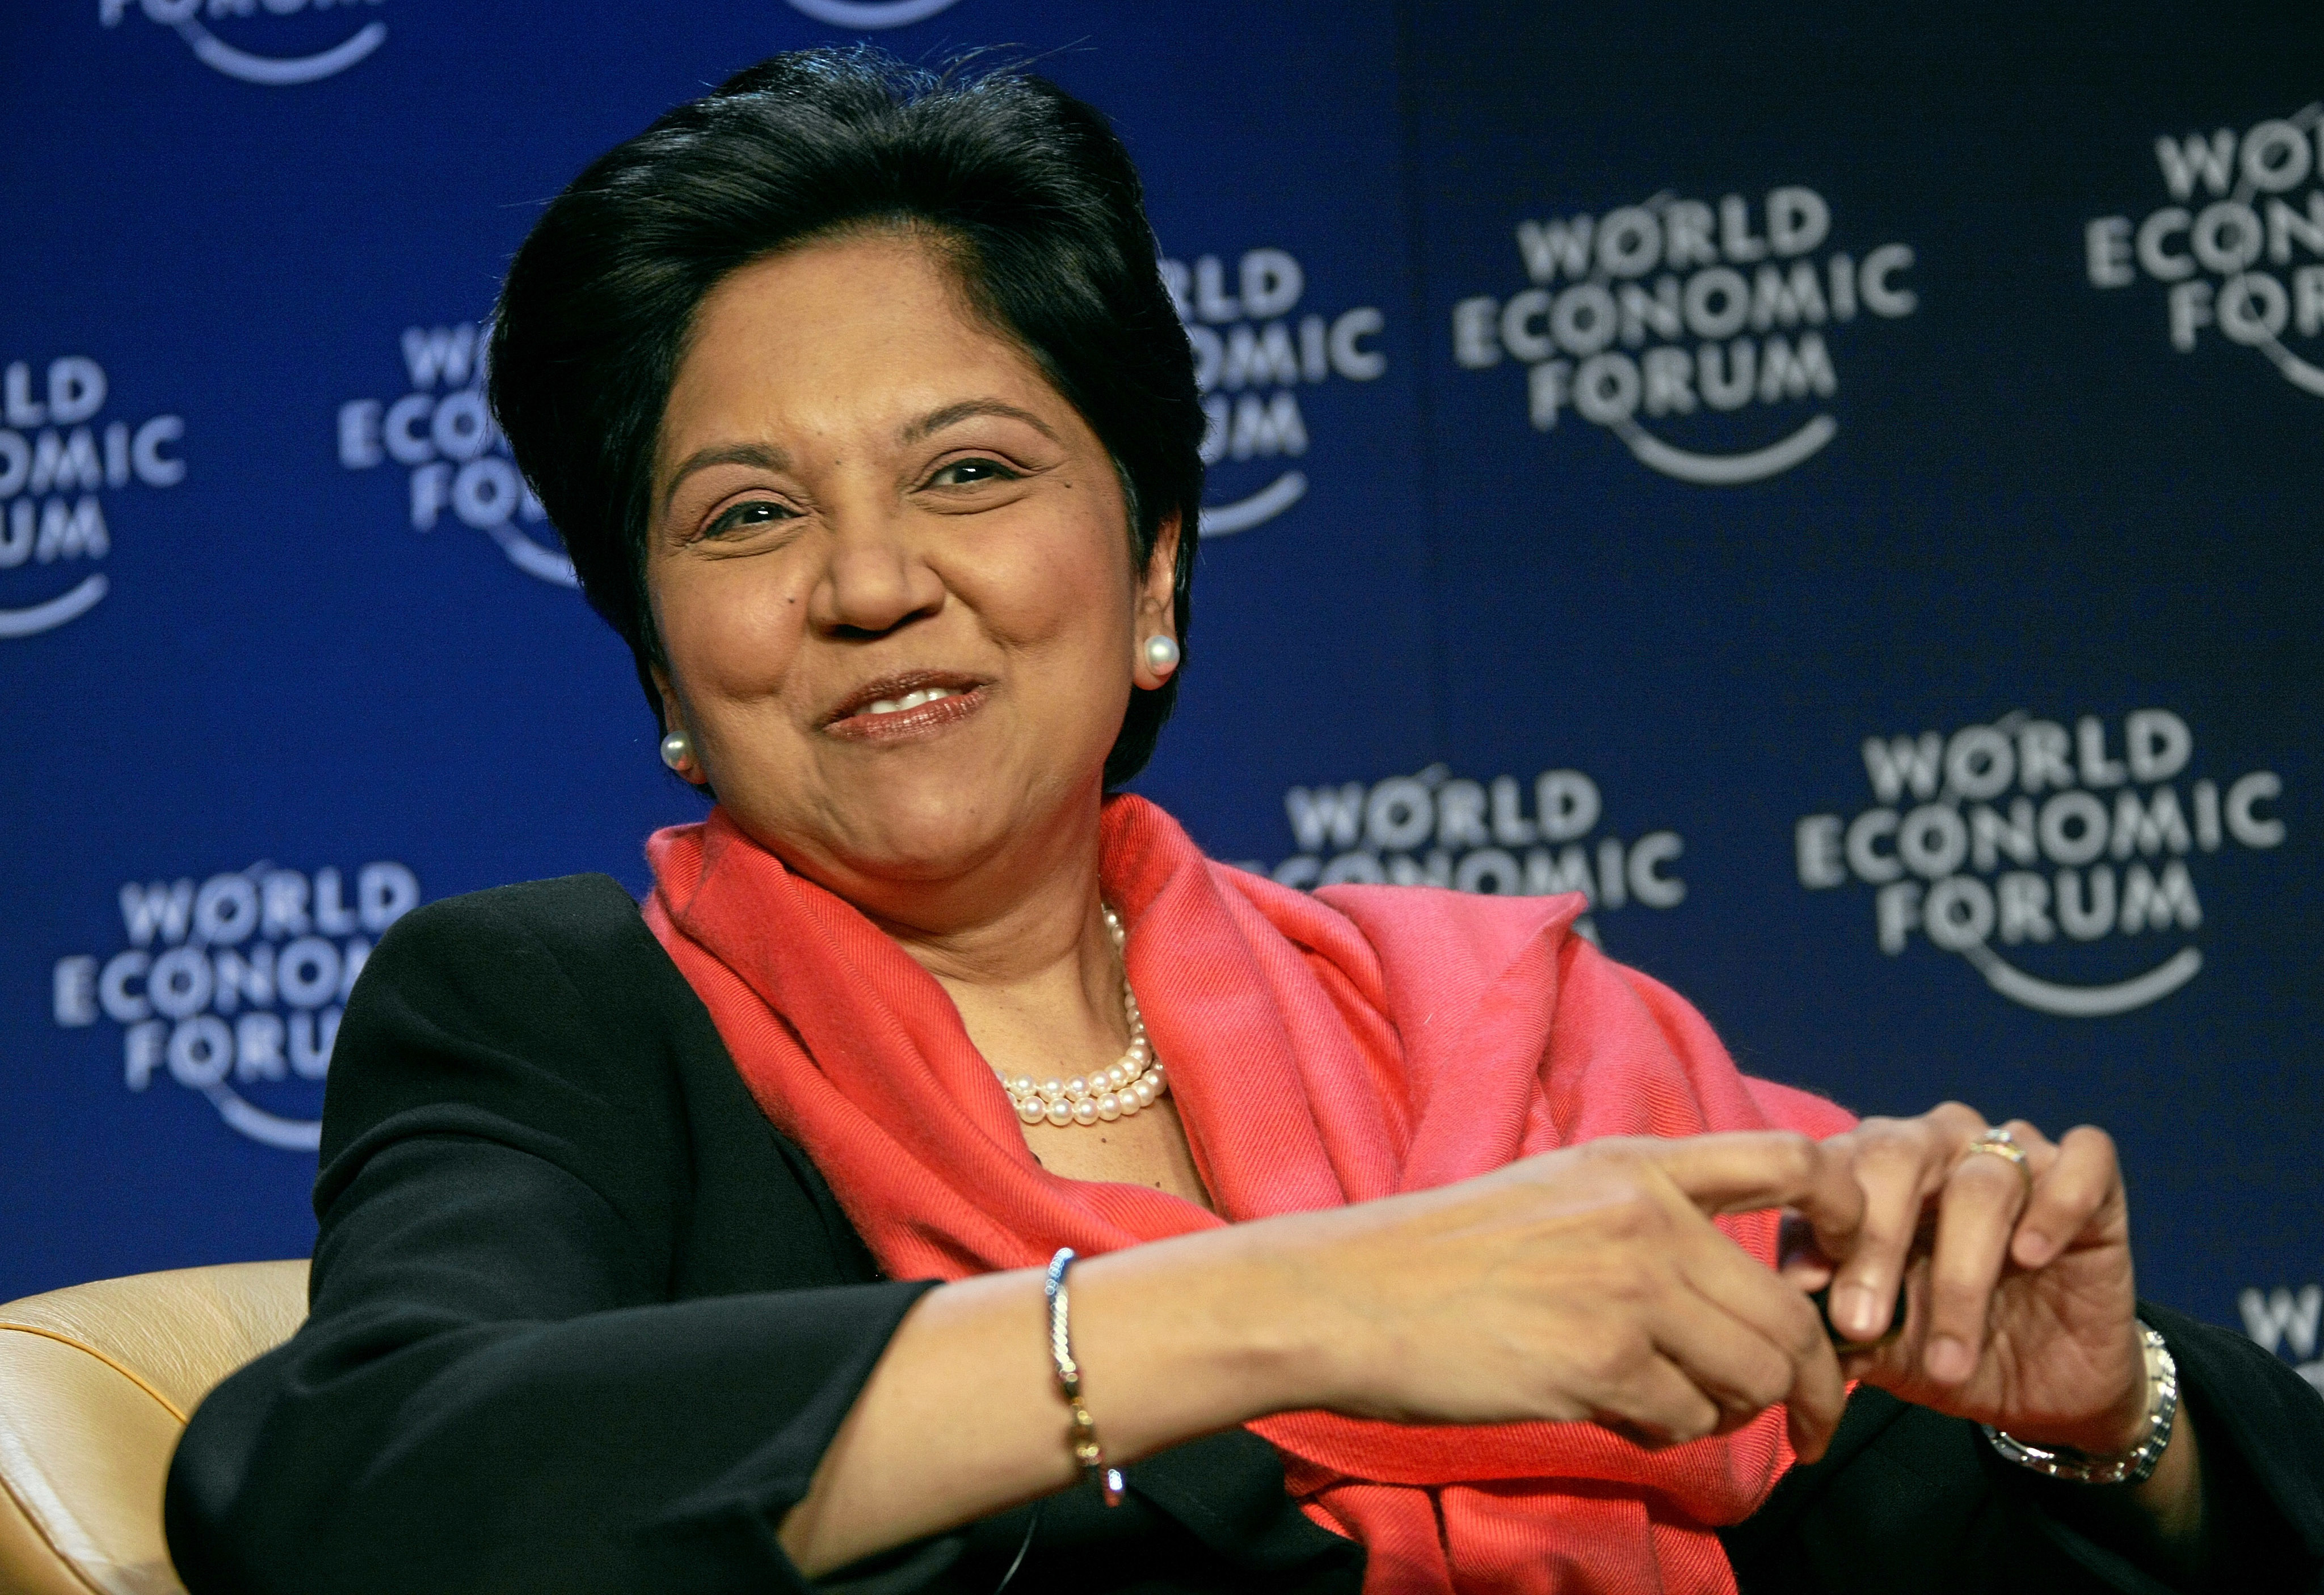 DAVOS/SWITZERLAND, 27JAN08 - Indra K. Nooyi, Chairman and Chief Executive Officer, PepsiCo, USA; Co-Chair of the World Economic Forum Annual Meeting 2008, captured during the session 'Message from Davos: Believing in the Future' at the Annual Meeting 2008 of the World Economic Forum in Davos, Switzerland, January 27, 2008. Copyright by World Economic Forum    swiss-image.ch/Photo by Remy Steinegger+++No resale, no archive+++